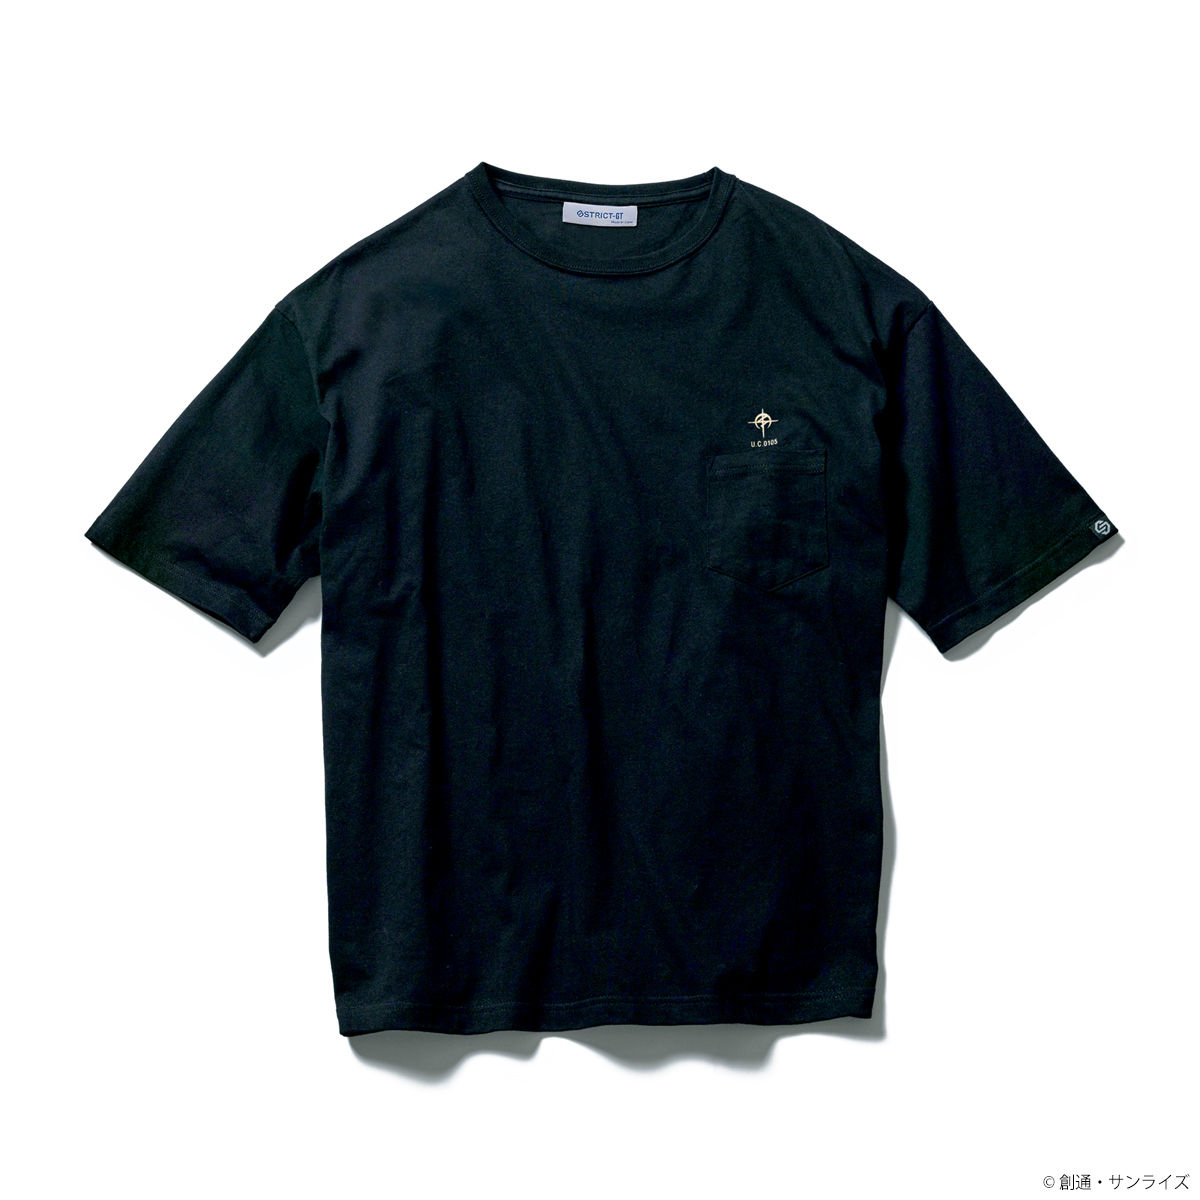 Hathaway T-shirt—Mobile Suit Gundam Hathaway/STRICT-G Collaboration